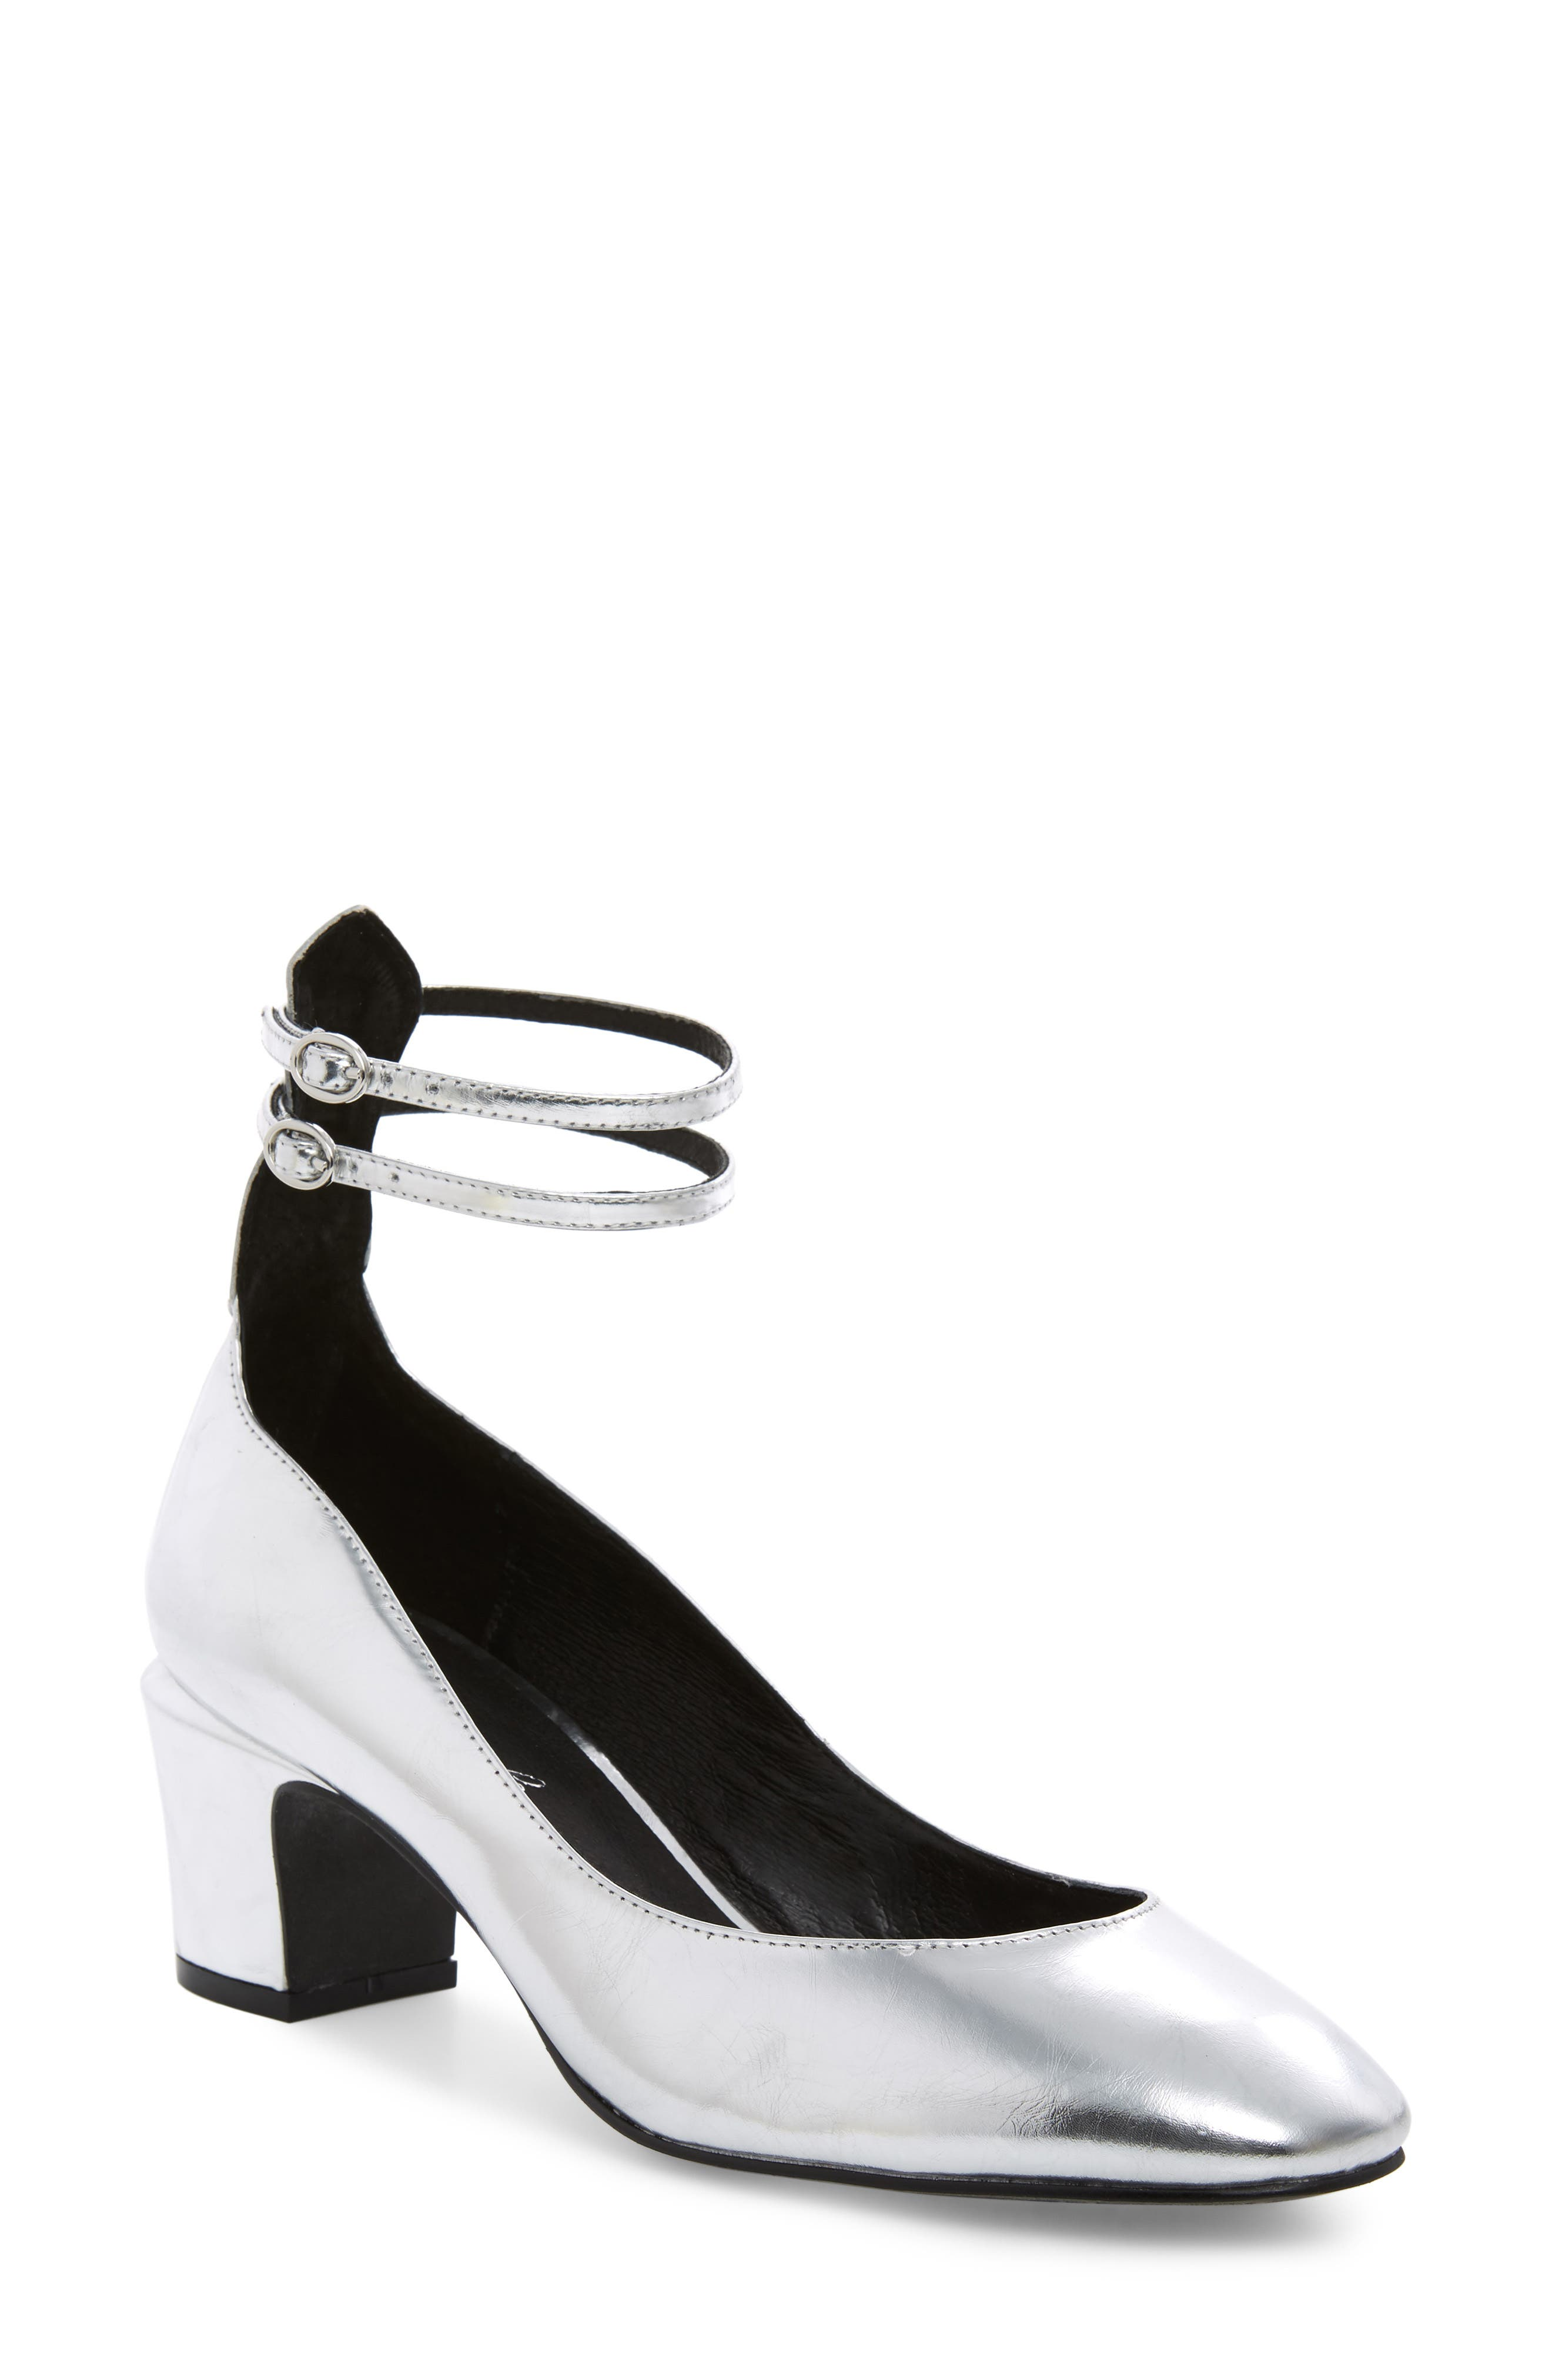 FREE PEOPLE,                             Lana Ankle Strap Pump,                             Main thumbnail 1, color,                             040